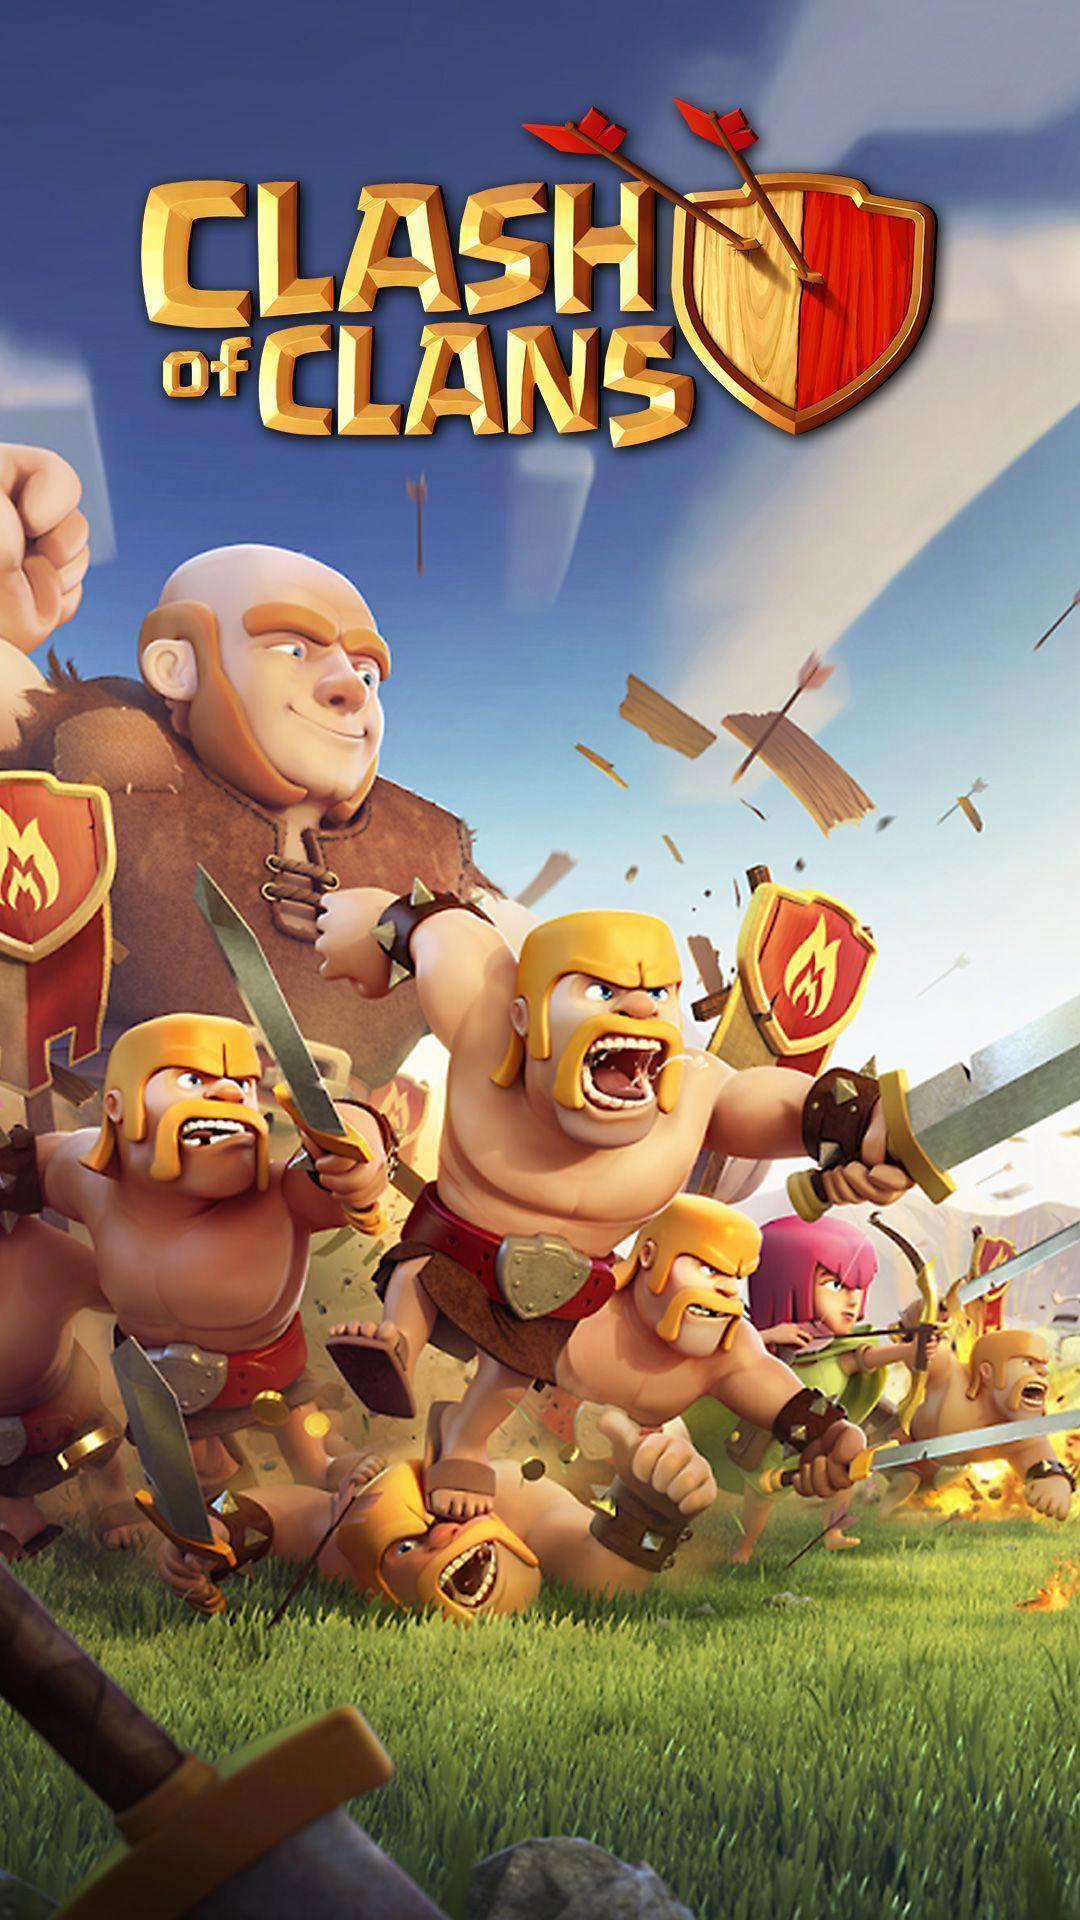 10 Clash of Clans Wallpapers for Clashers! | Clash for Dummies